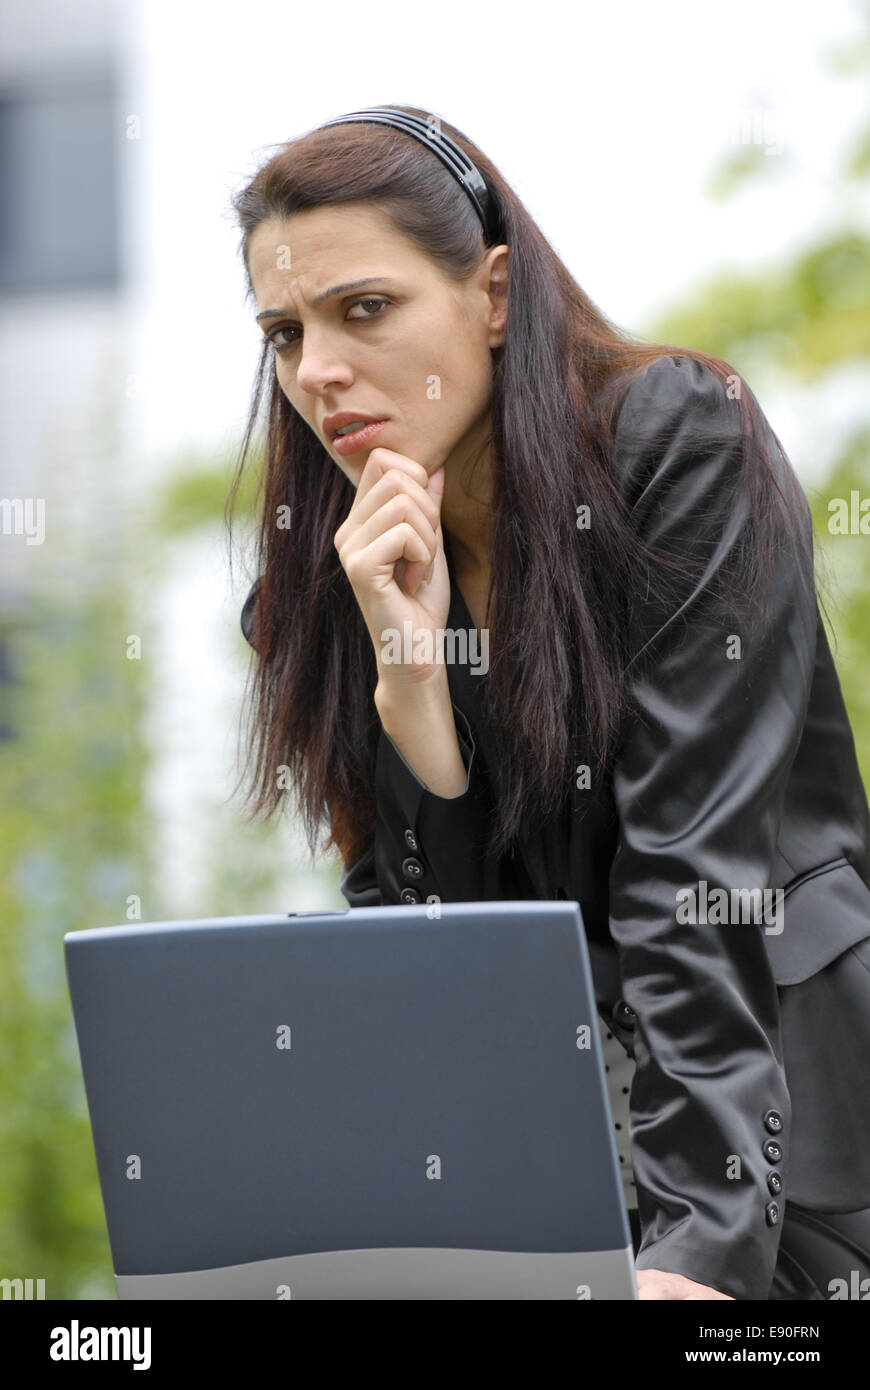 thoughtfull young woman - Stock Image